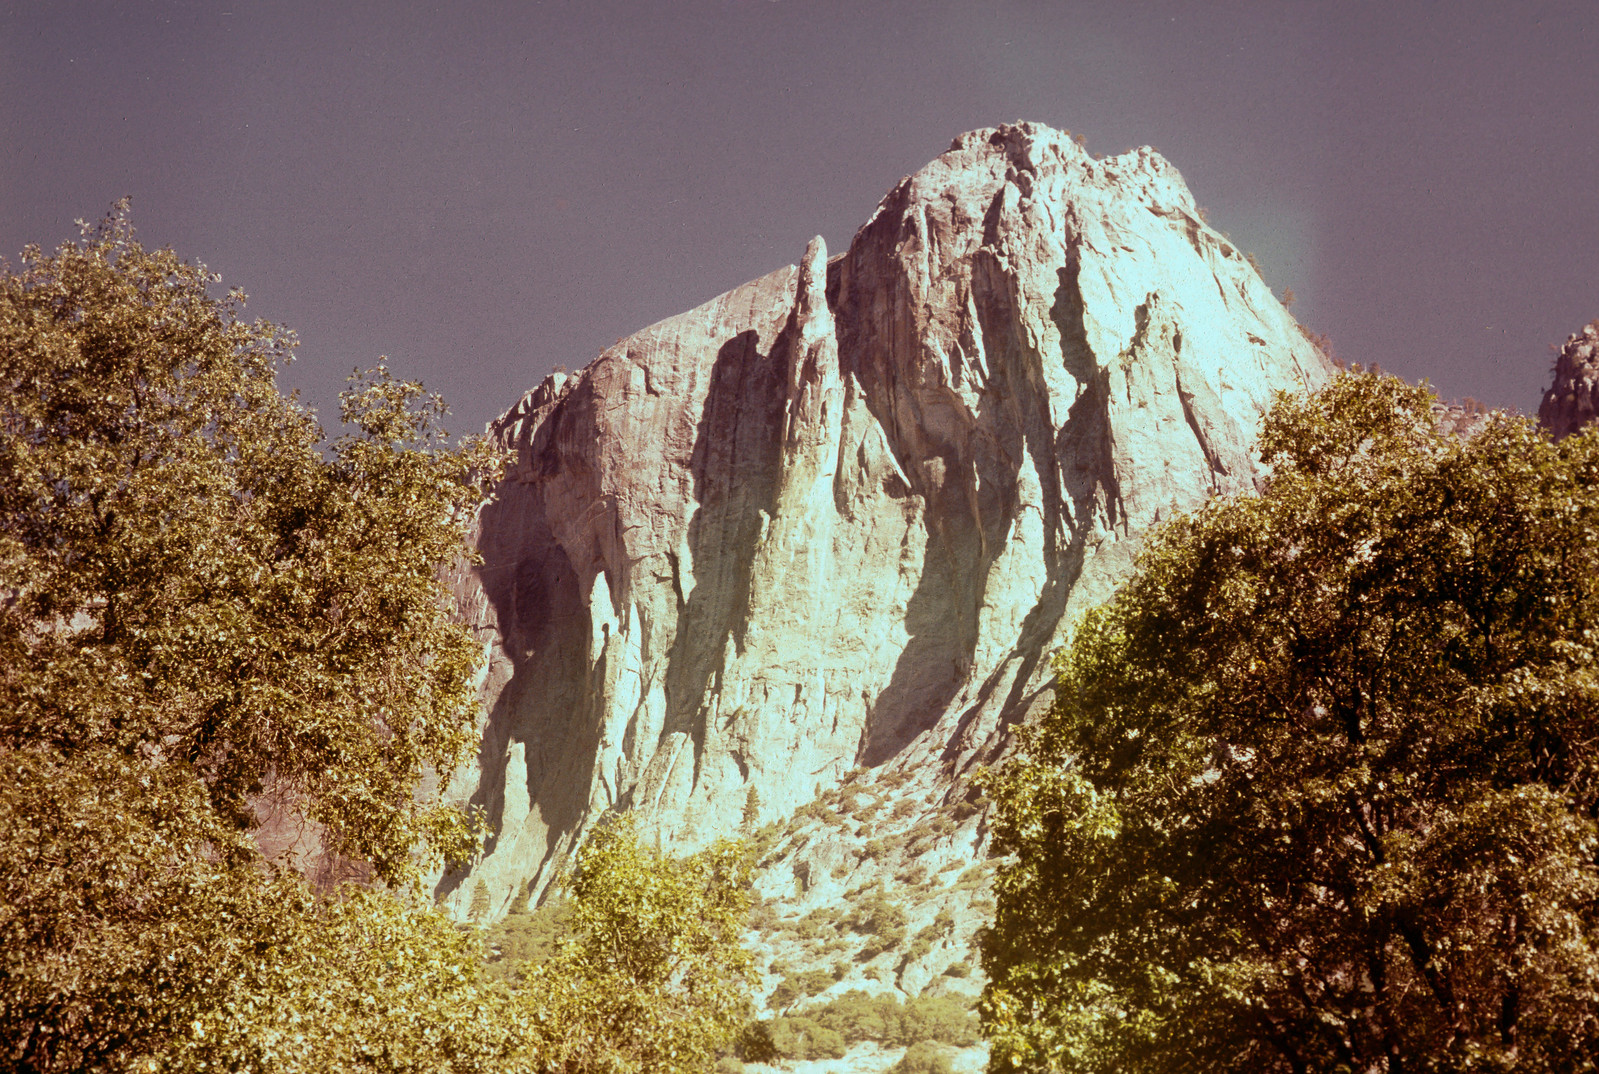 The Lost Arrow Spire from Yosemite Valley